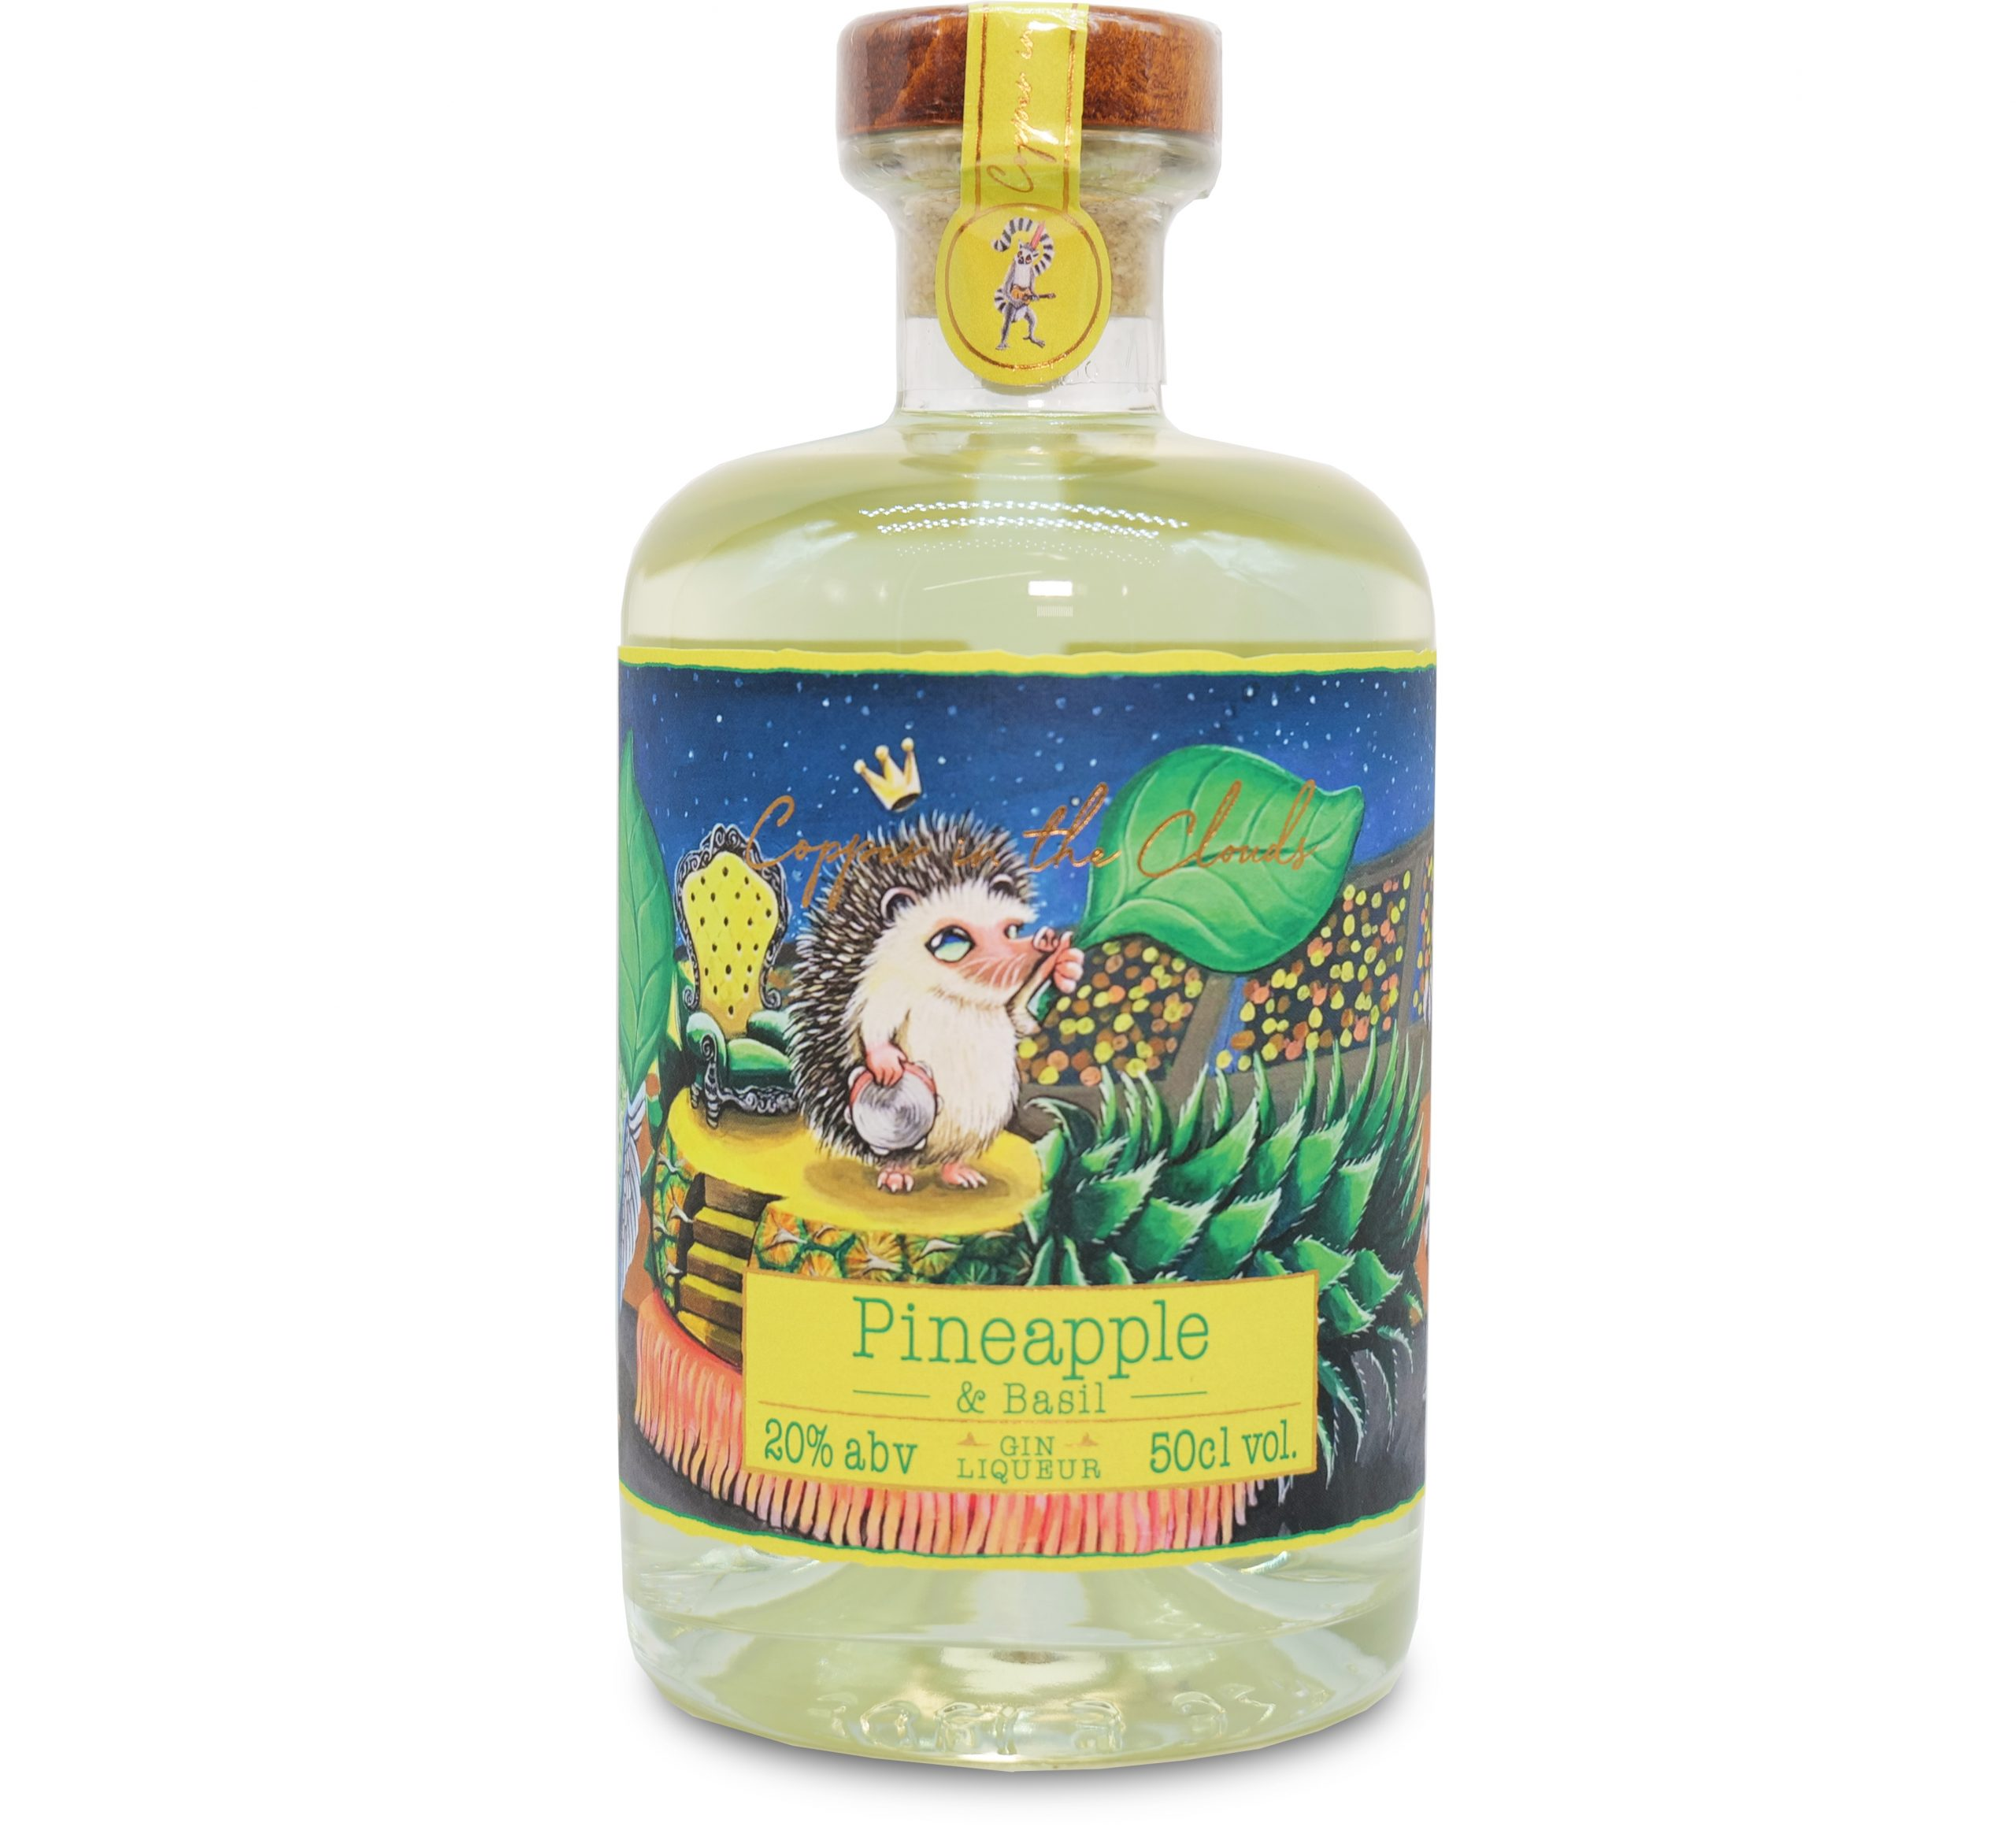 Pineapple and Basil Gin Liqueur by Copper in the Clouds